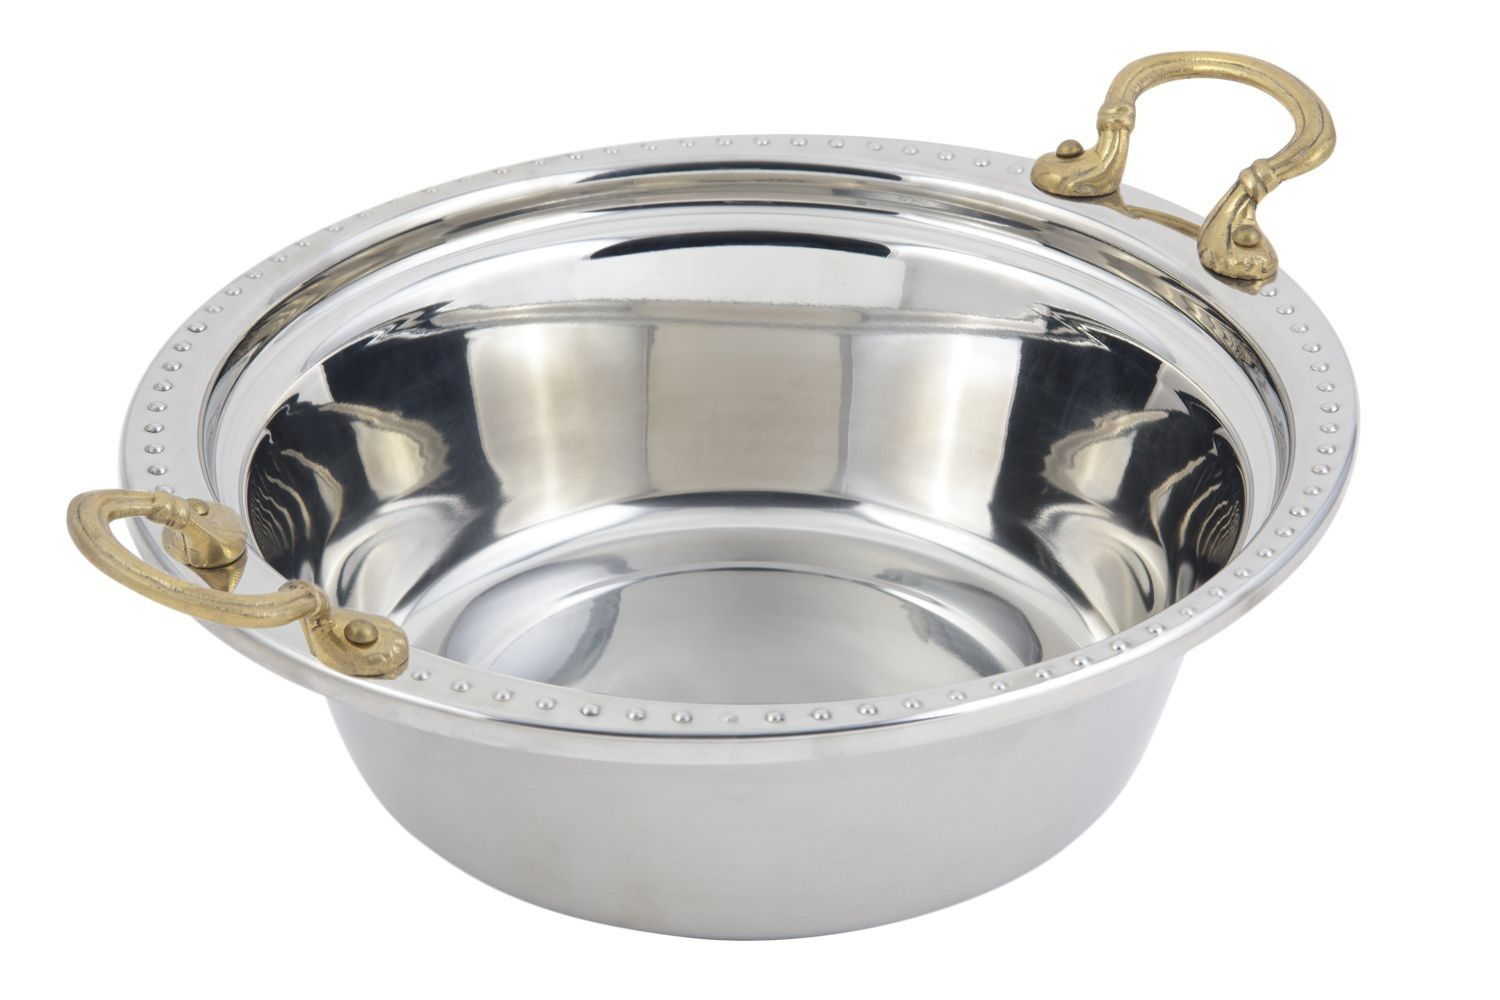 Bon Chef 5356HR Bolero Design Casserole Dish with Round Brass Handles, 4 Qt.